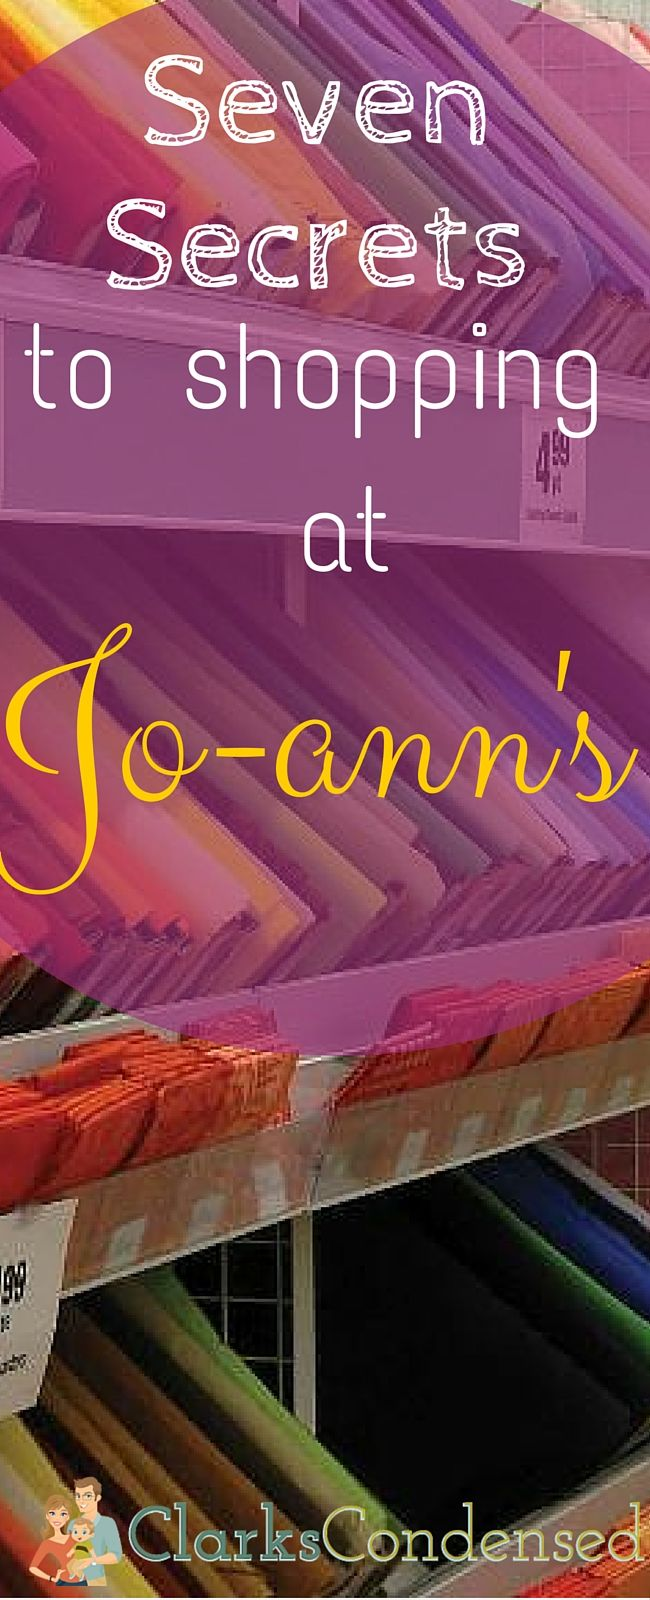 I've been a long-time shopper at Jo-Ann's...and there are definitely some secrets to shopping there! Here's what I've learned about getting the most for my money there!